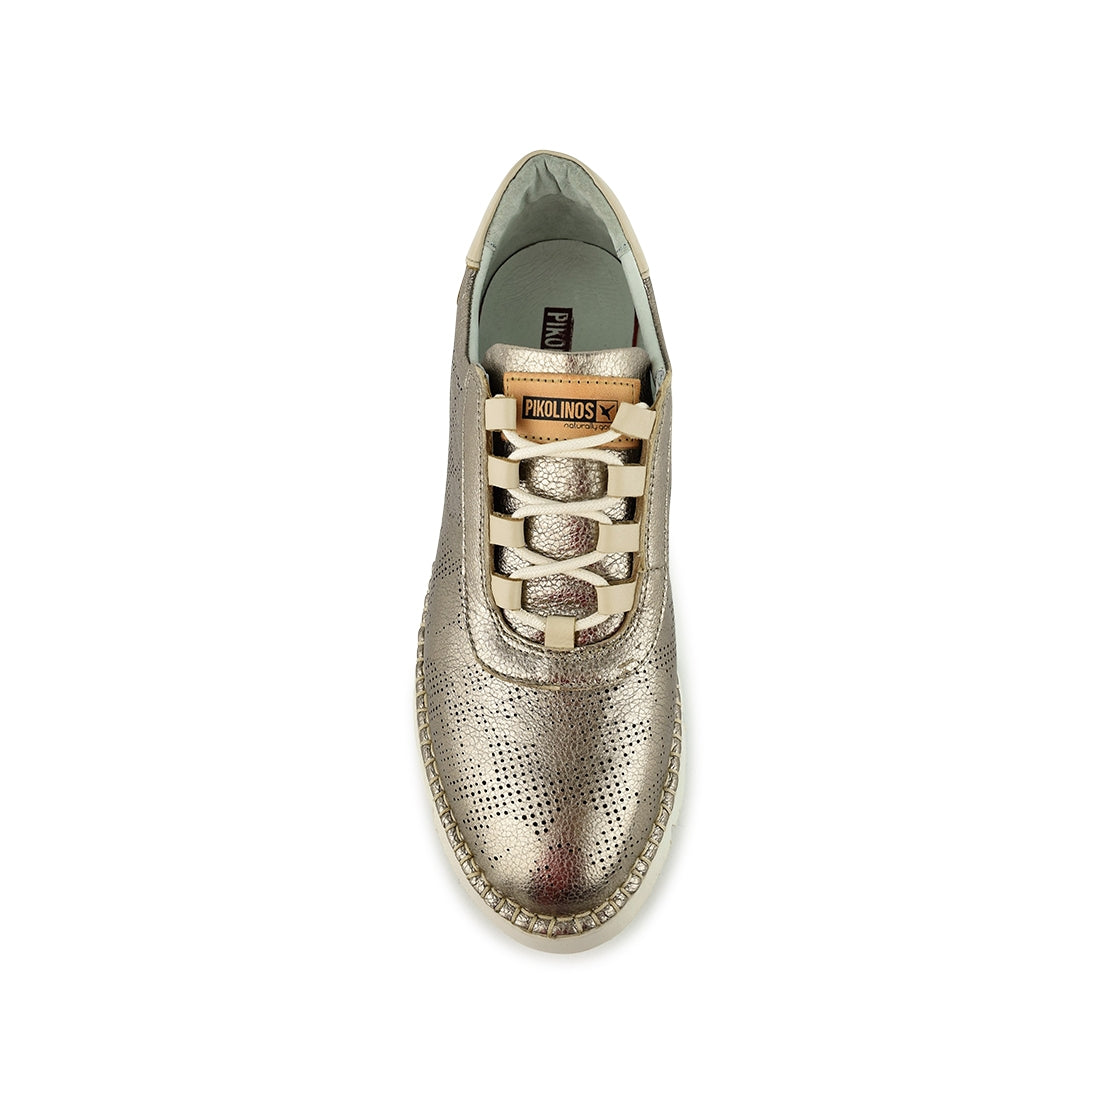 FILIA - Pikolinos Lace Up Pewter